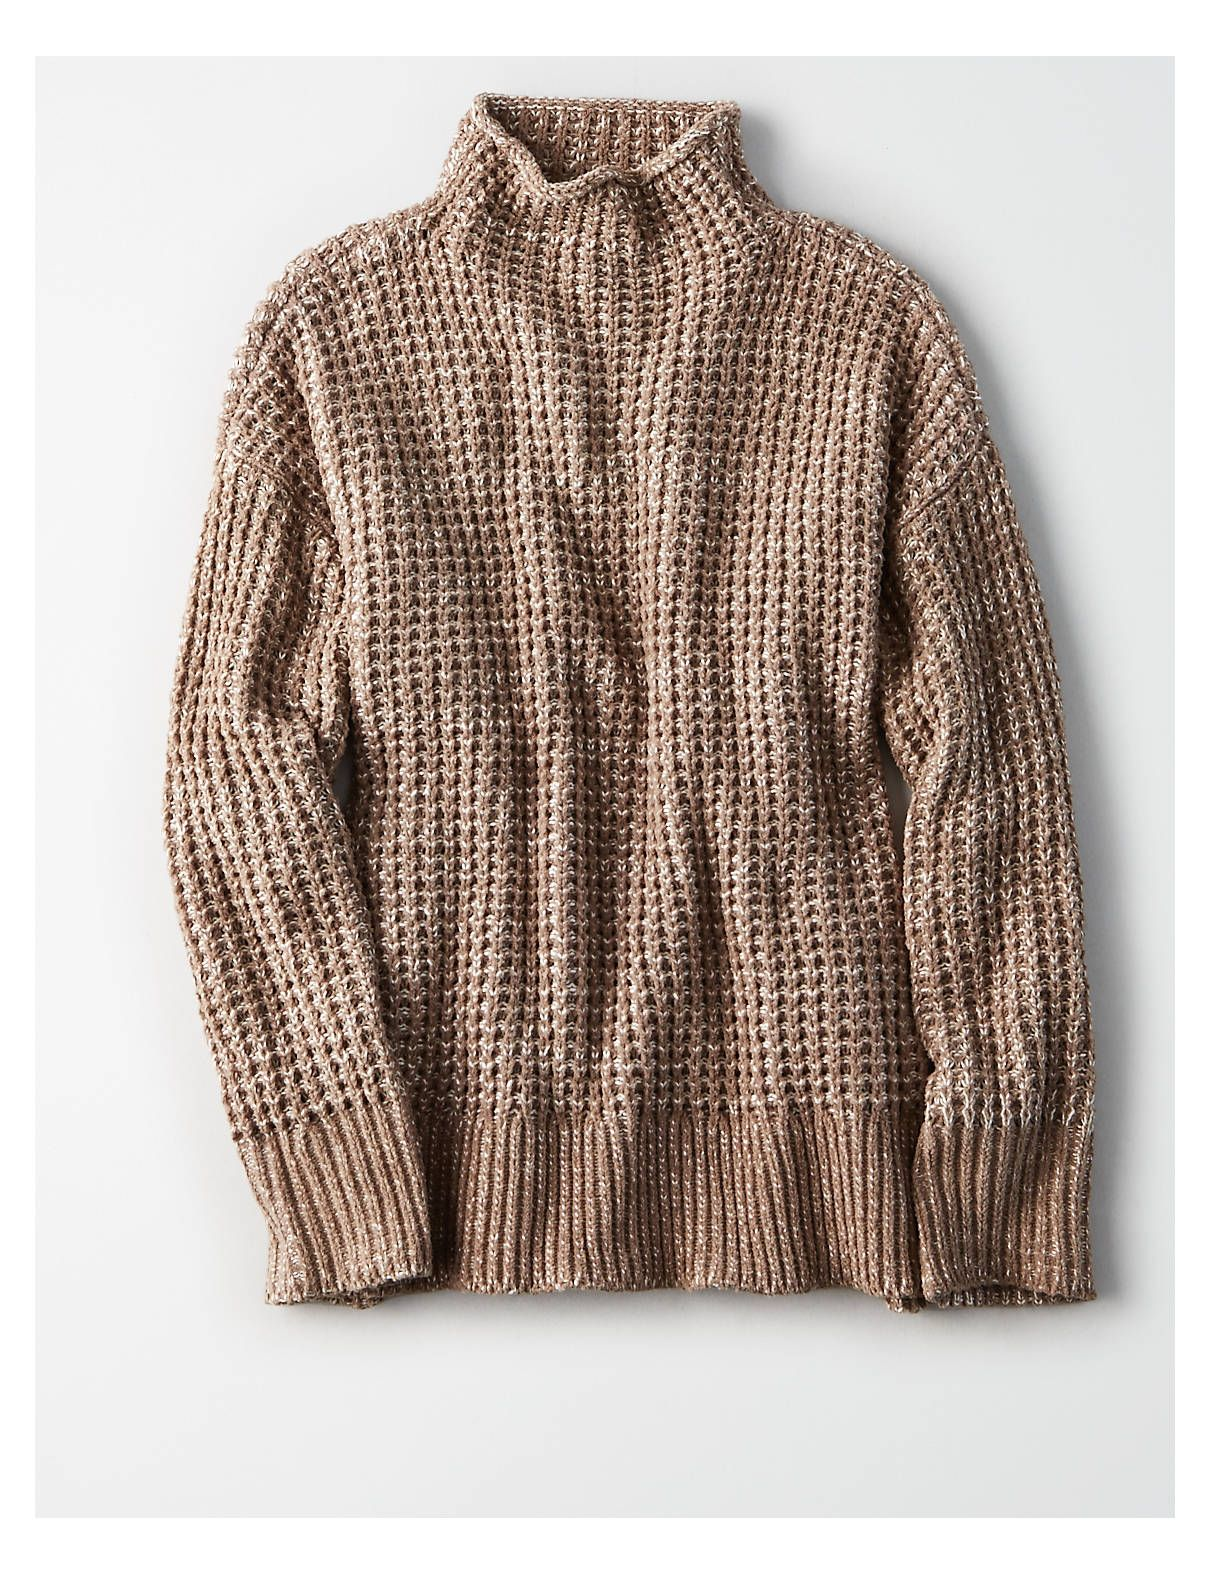 6f1a200fd4 AE Slouchy Mock Neck Pullover Sweater in 2018